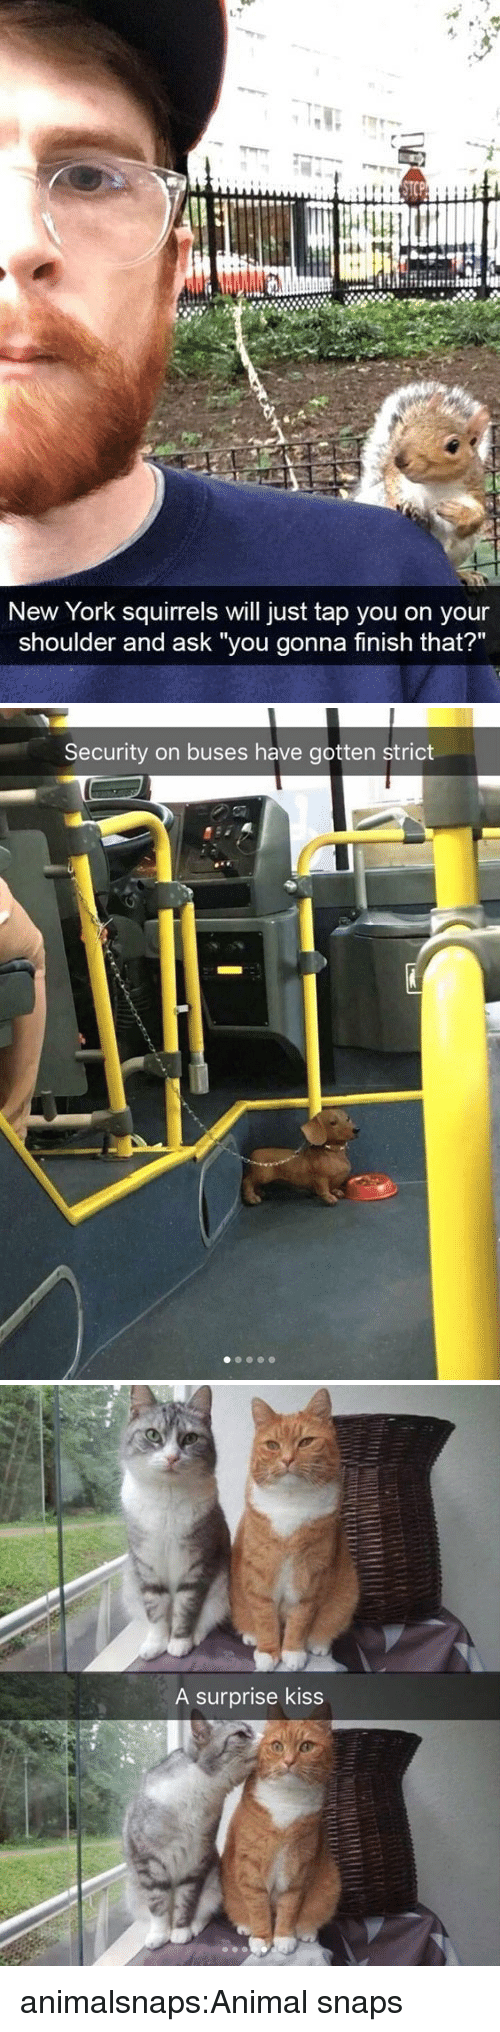 """New York, Target, and Tumblr: New York squirrels will just tap you on your  shoulder and ask """"you gonna finish that?""""   Security on buses have gotten strict   A surprise kiss animalsnaps:Animal snaps"""